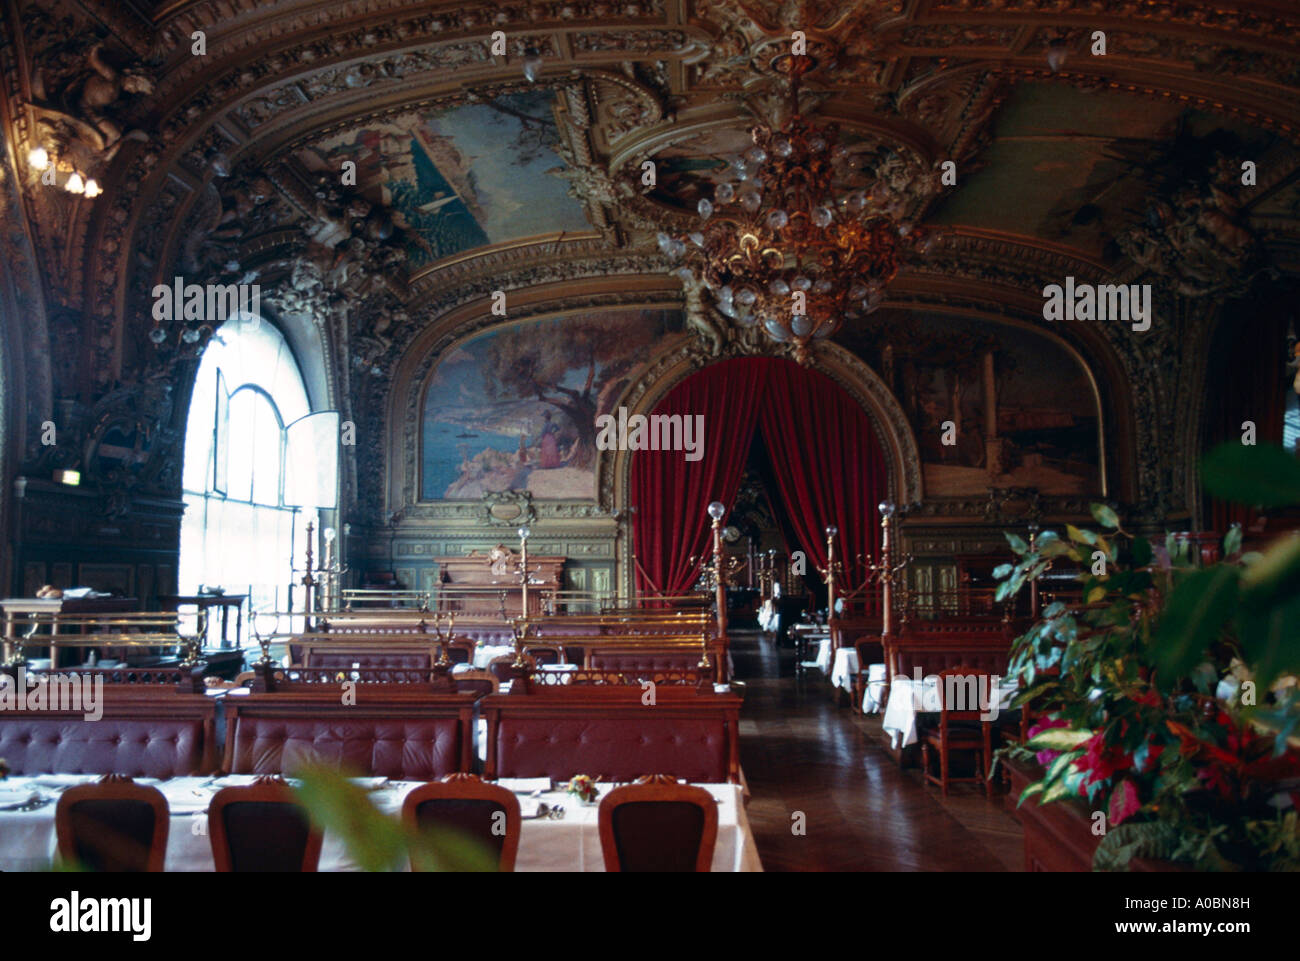 Restaurant Le Train Bleu Interieur Paris - Stock Image